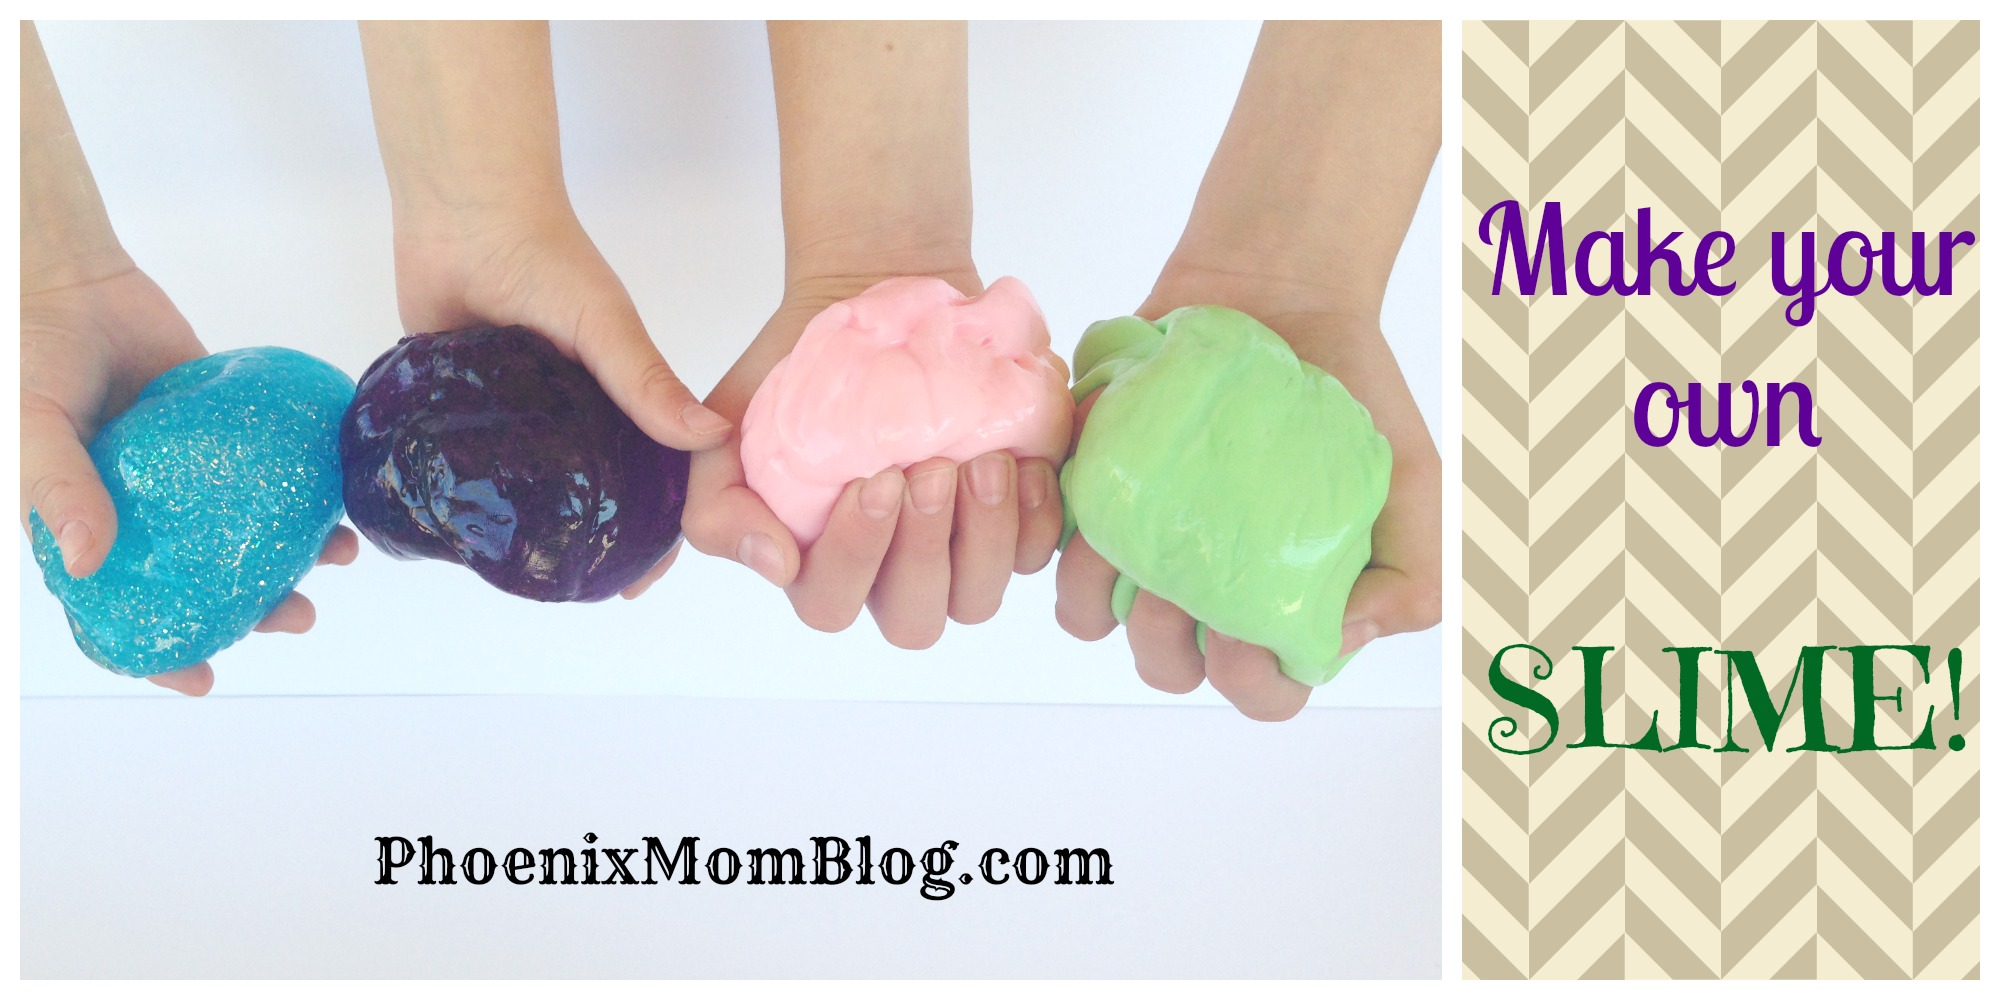 Fun Summer Science Project For Kids: Homemade Slime!